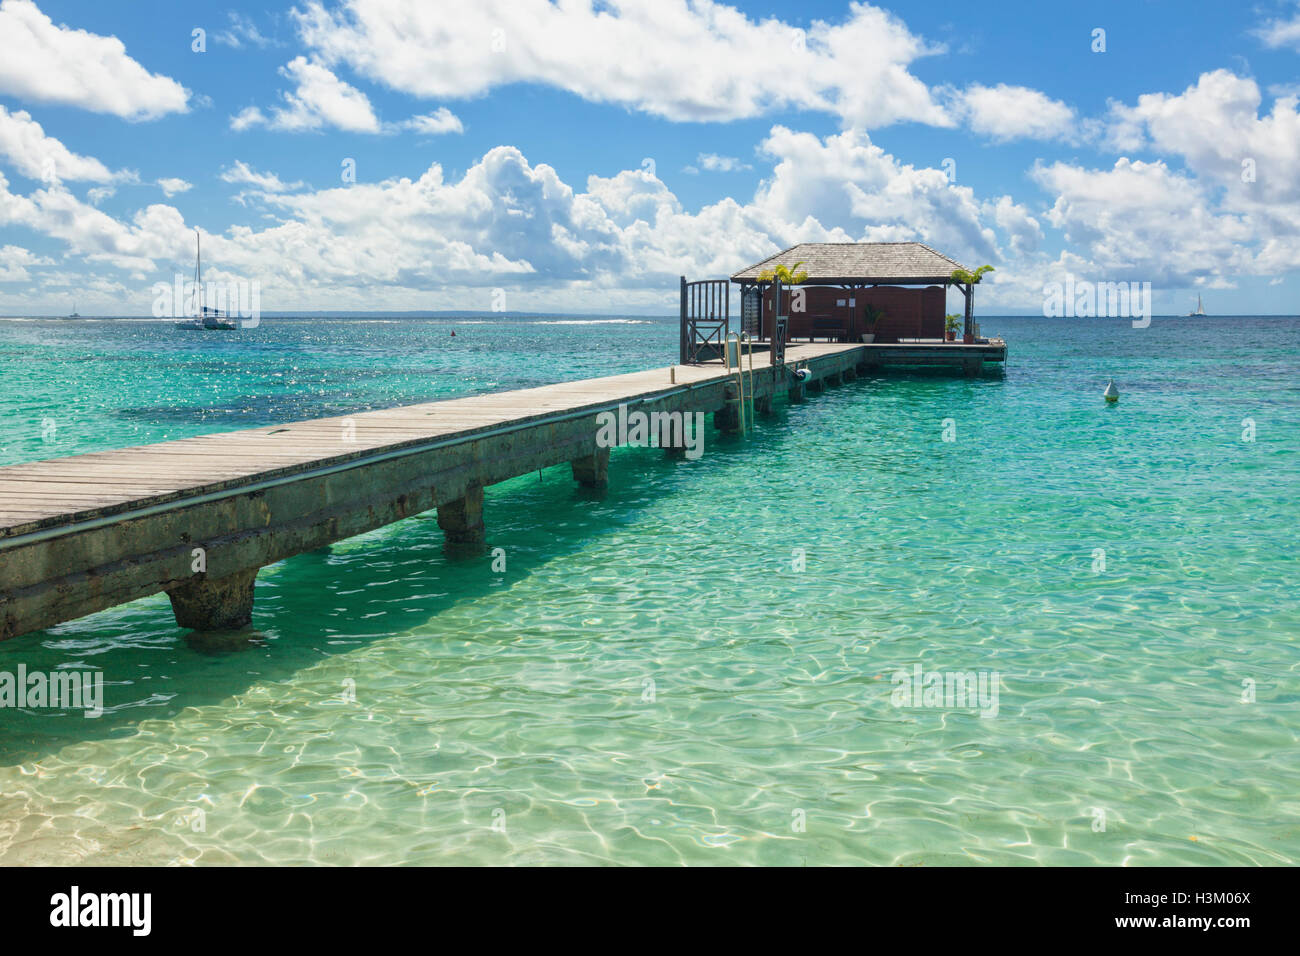 Jetty at tropical beach, Guadeloupe Stock Photo